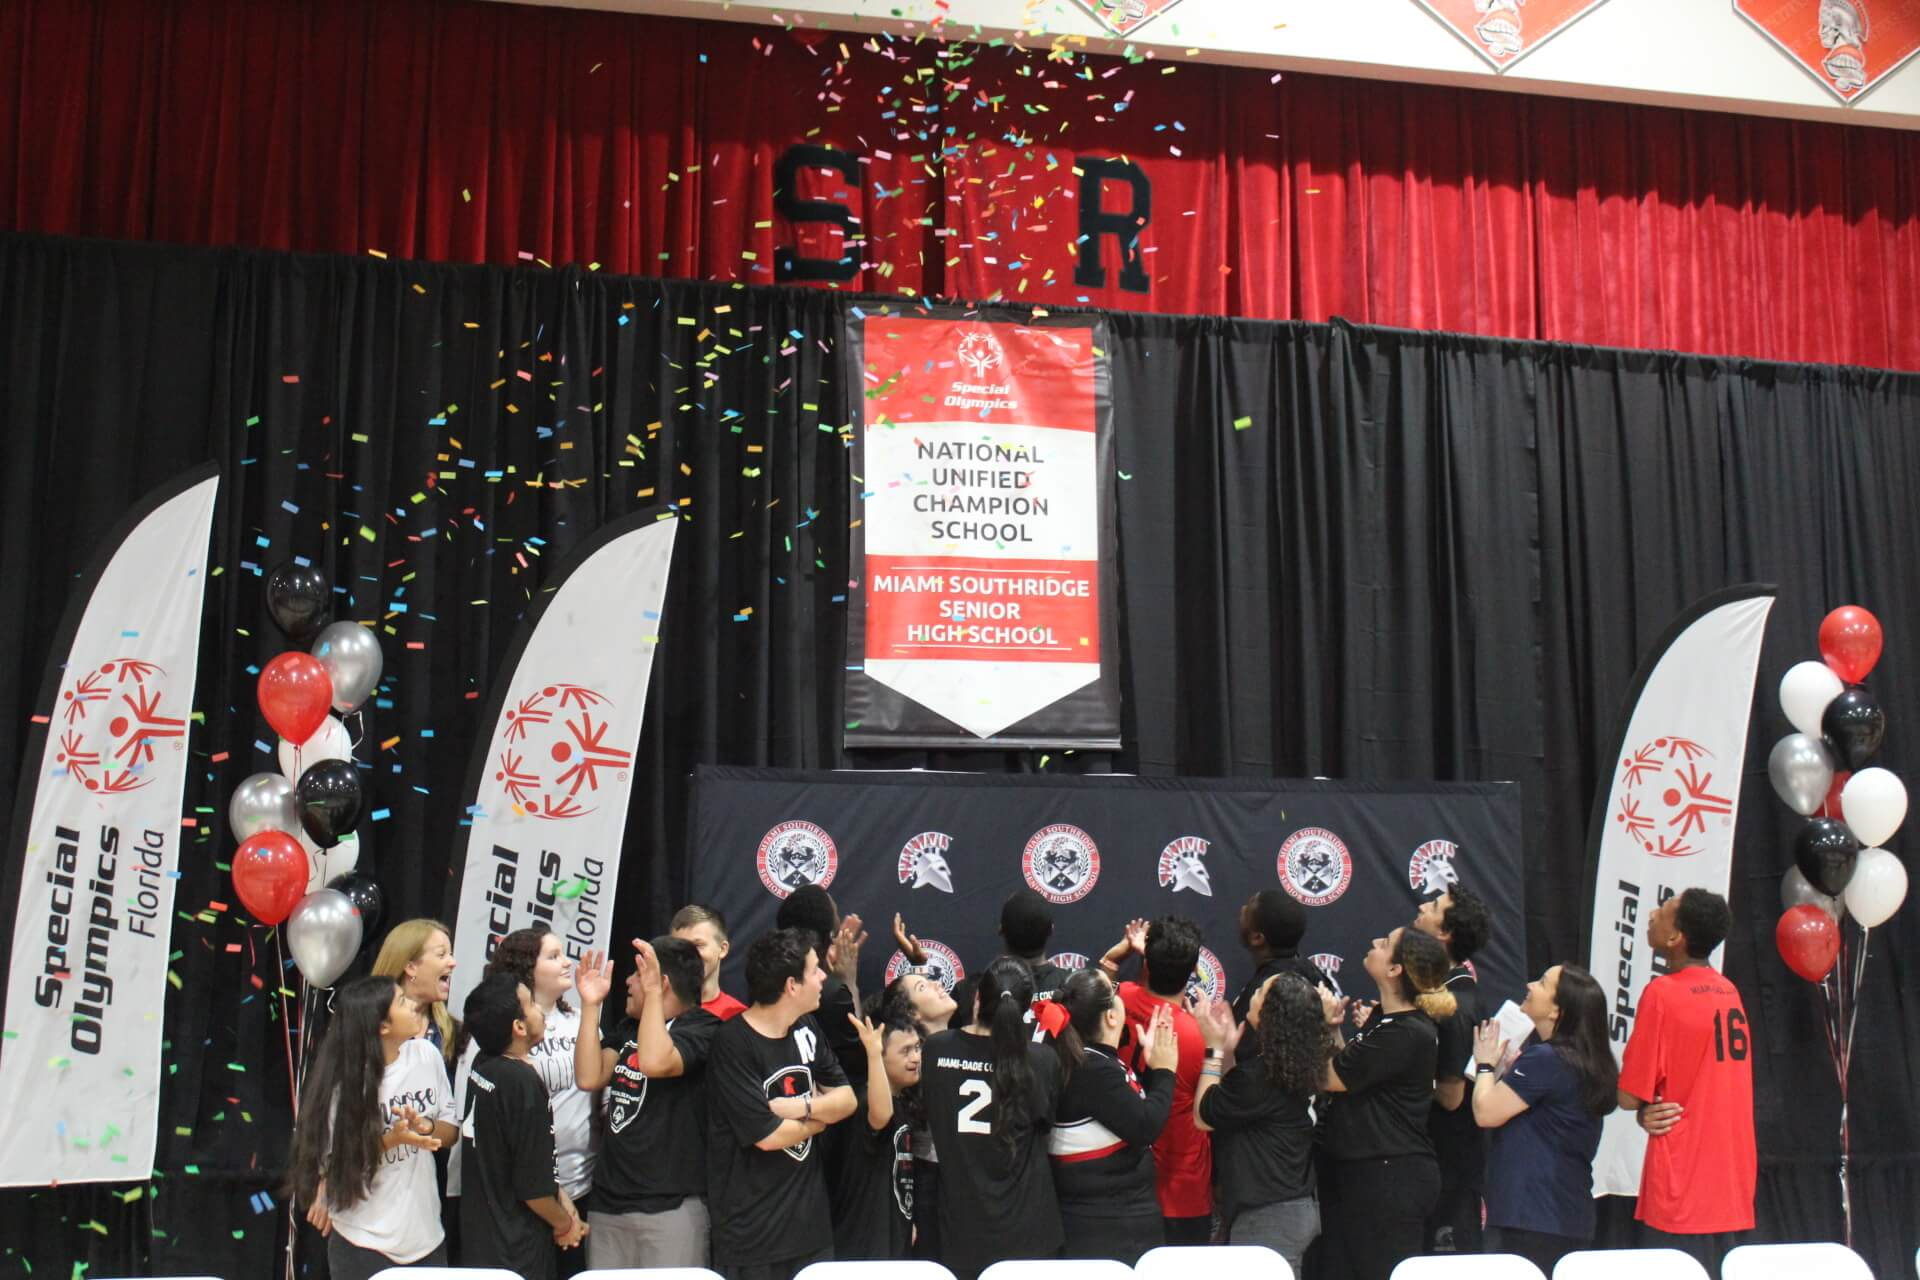 Miami Southridge Senior High School receiving their national banner.